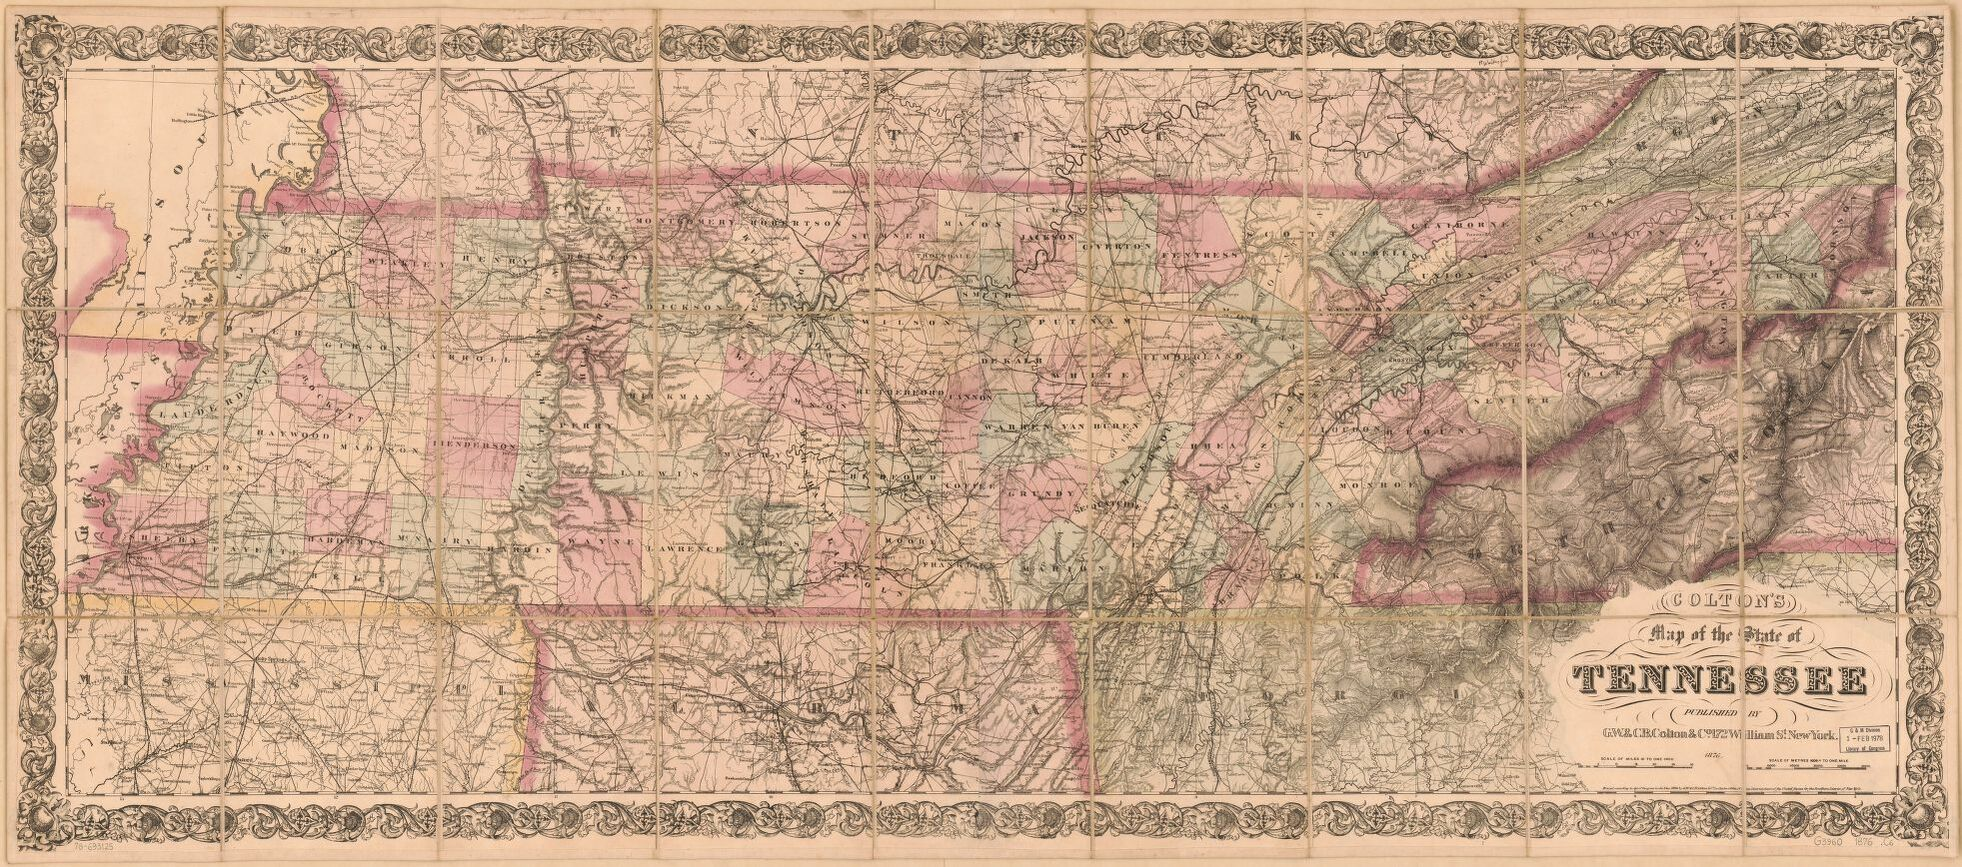 Tennessee map by G.W. & C.B. Colton & Co., 1876